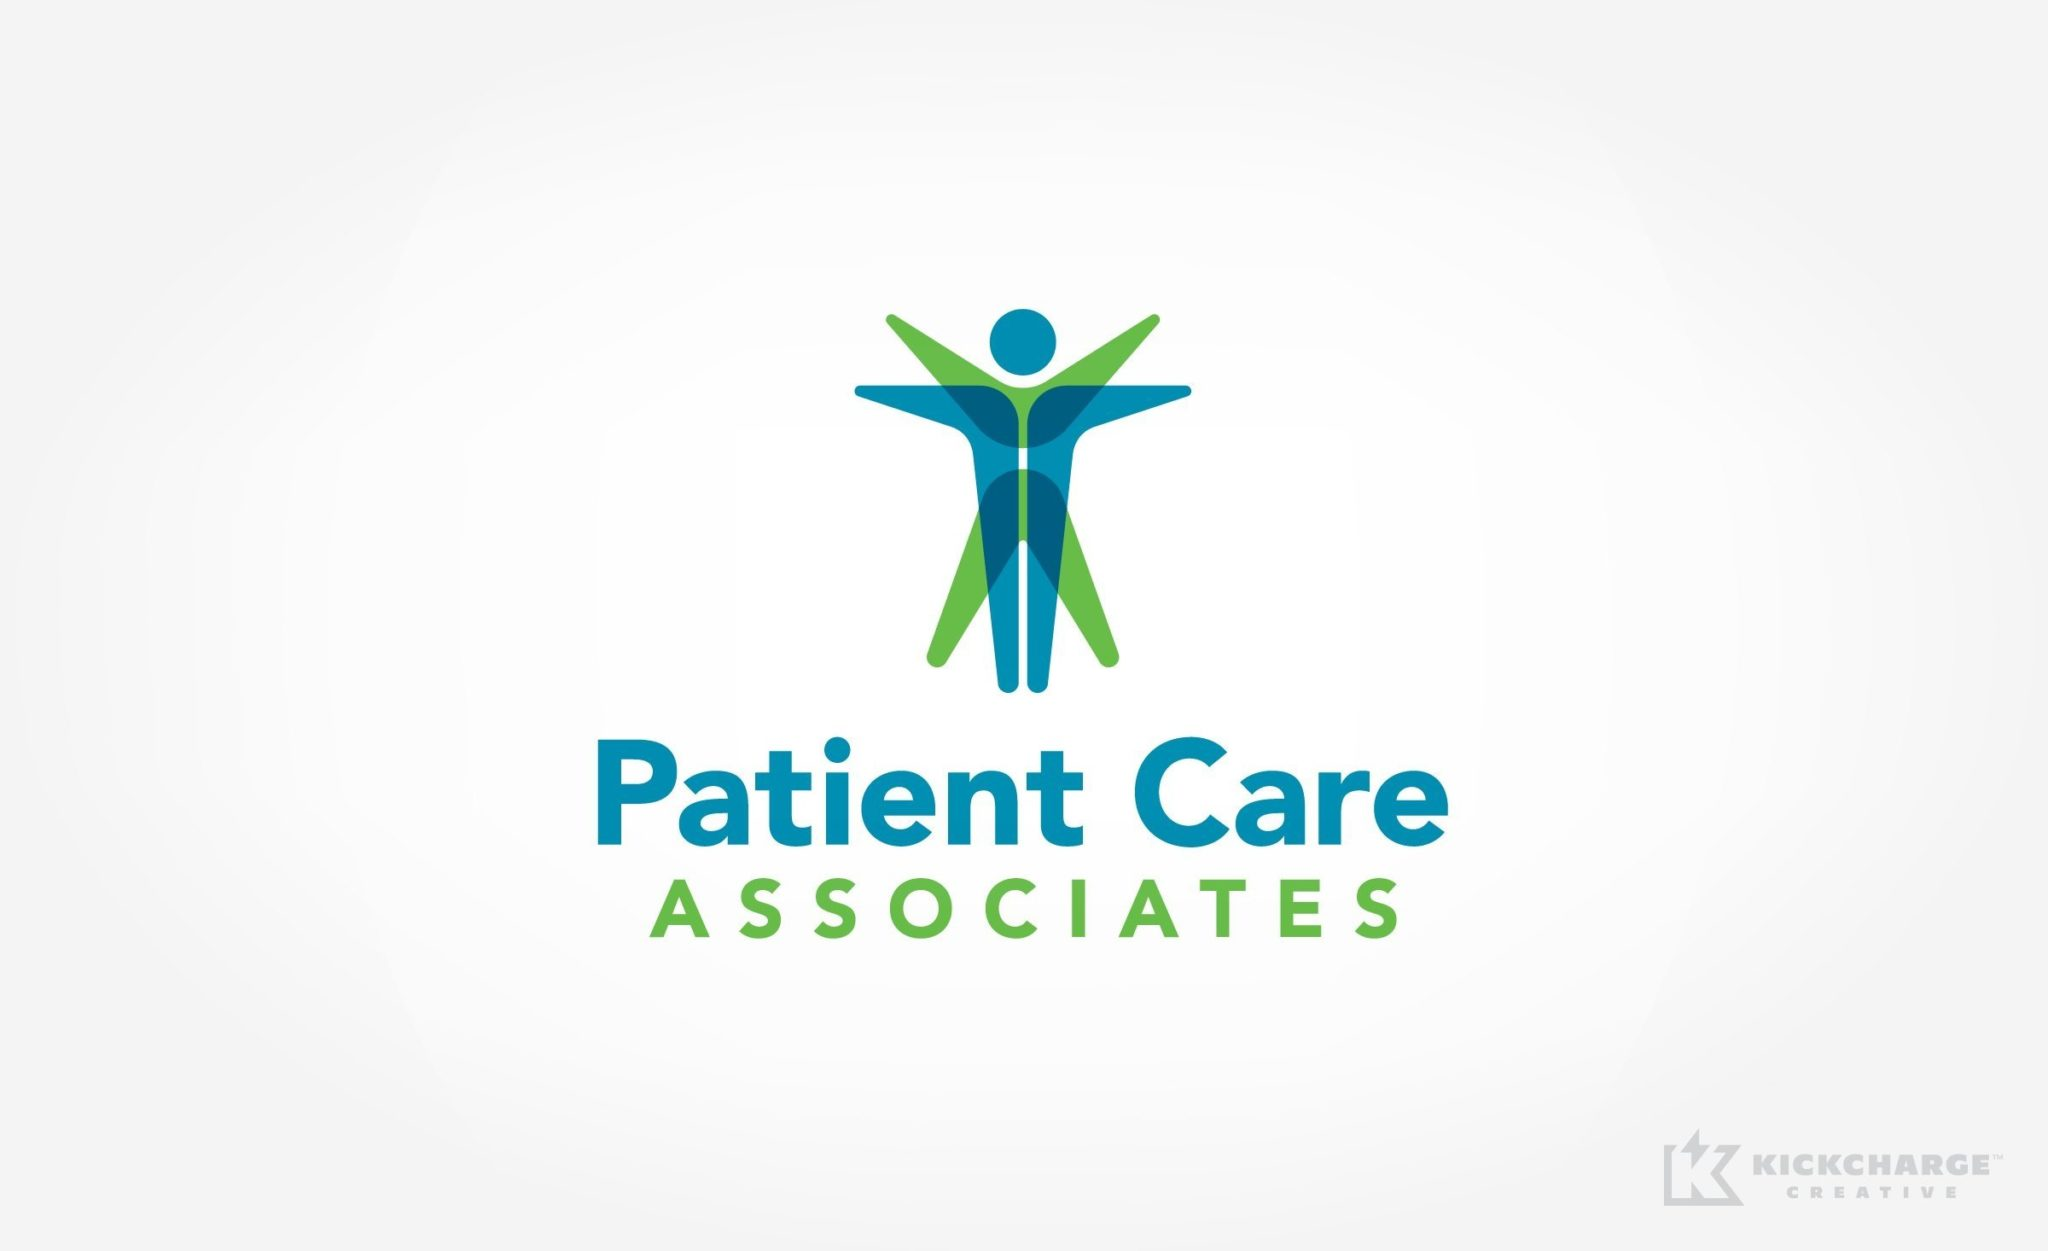 Logo design for a surgical center in Engelwood, NJ.